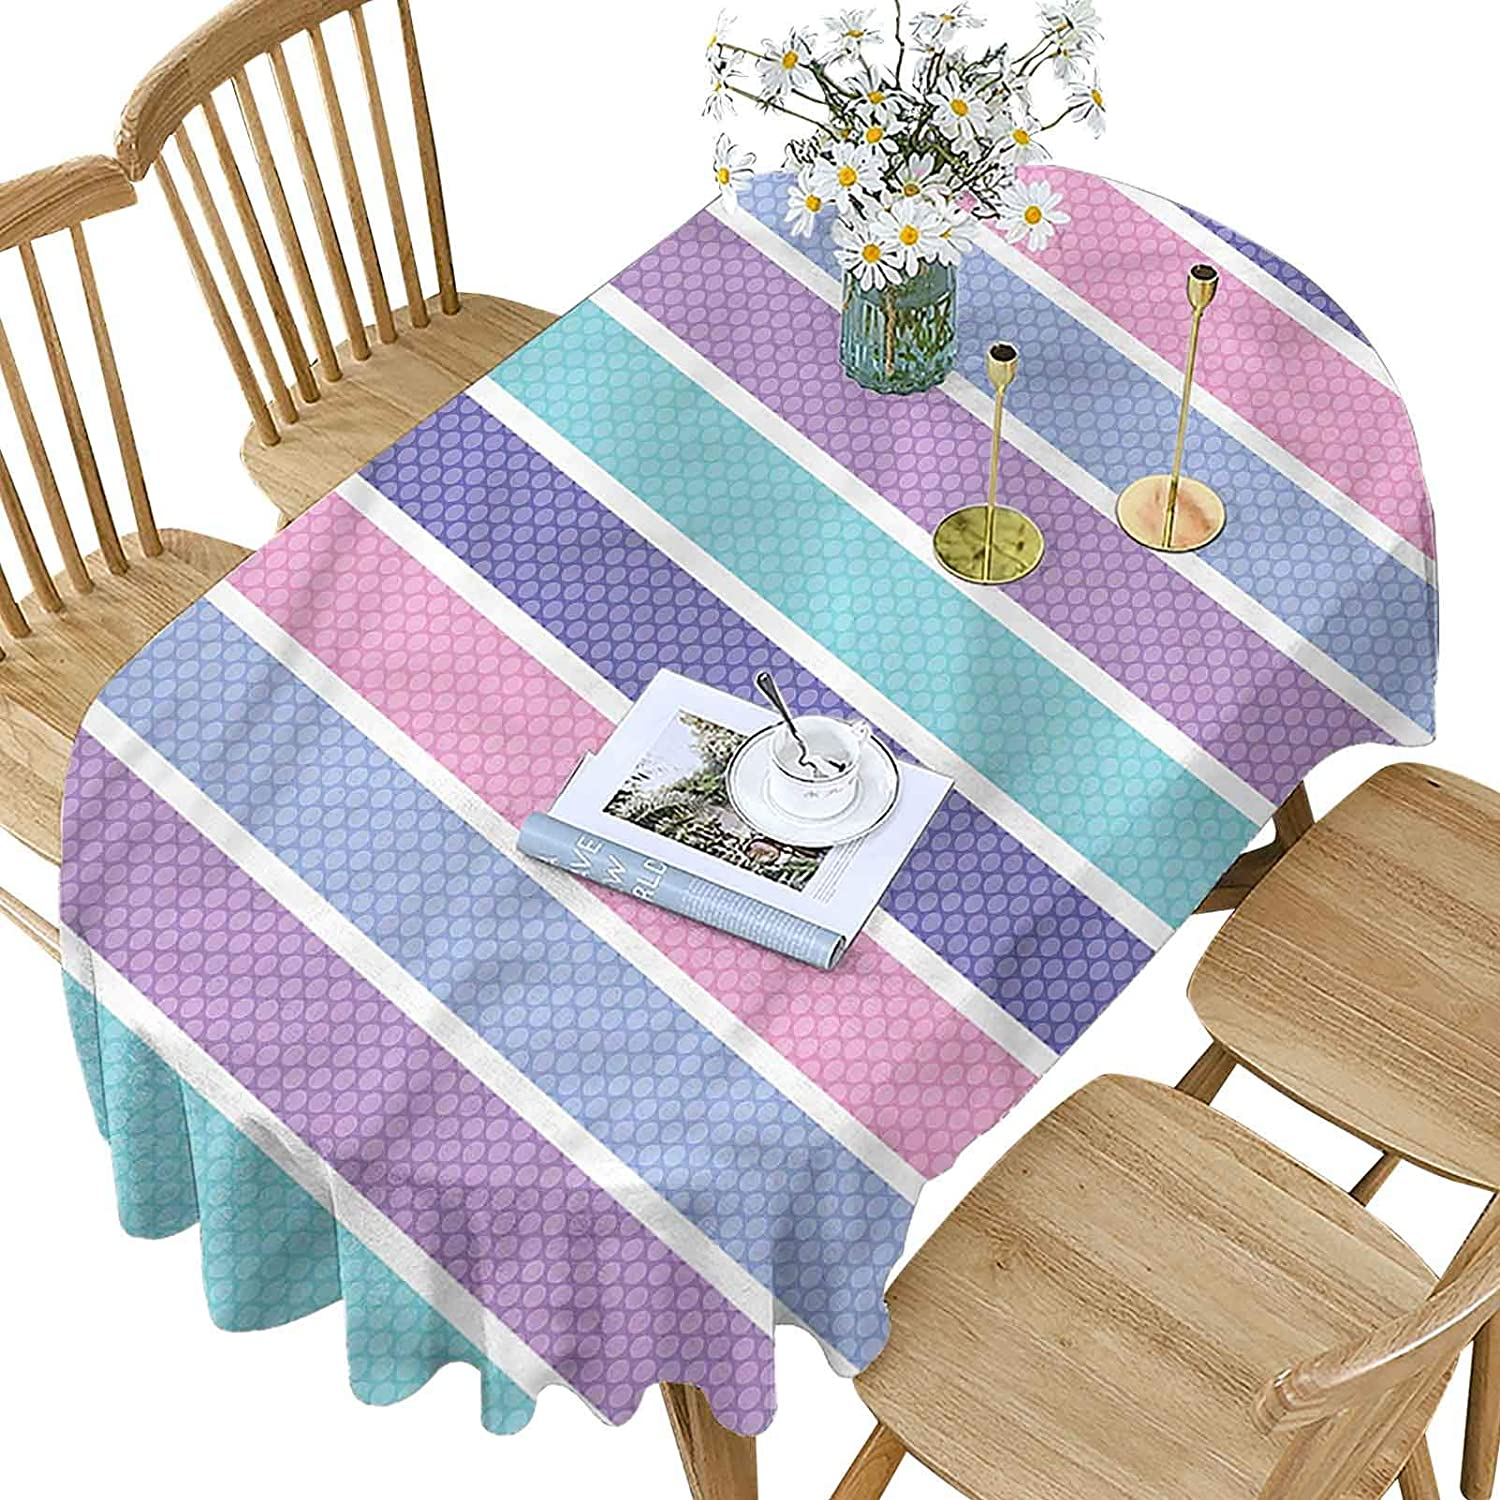 Pastel Super sale Polyester Oval Tablecloth Polka Pattern Limited price Dot Stripes with